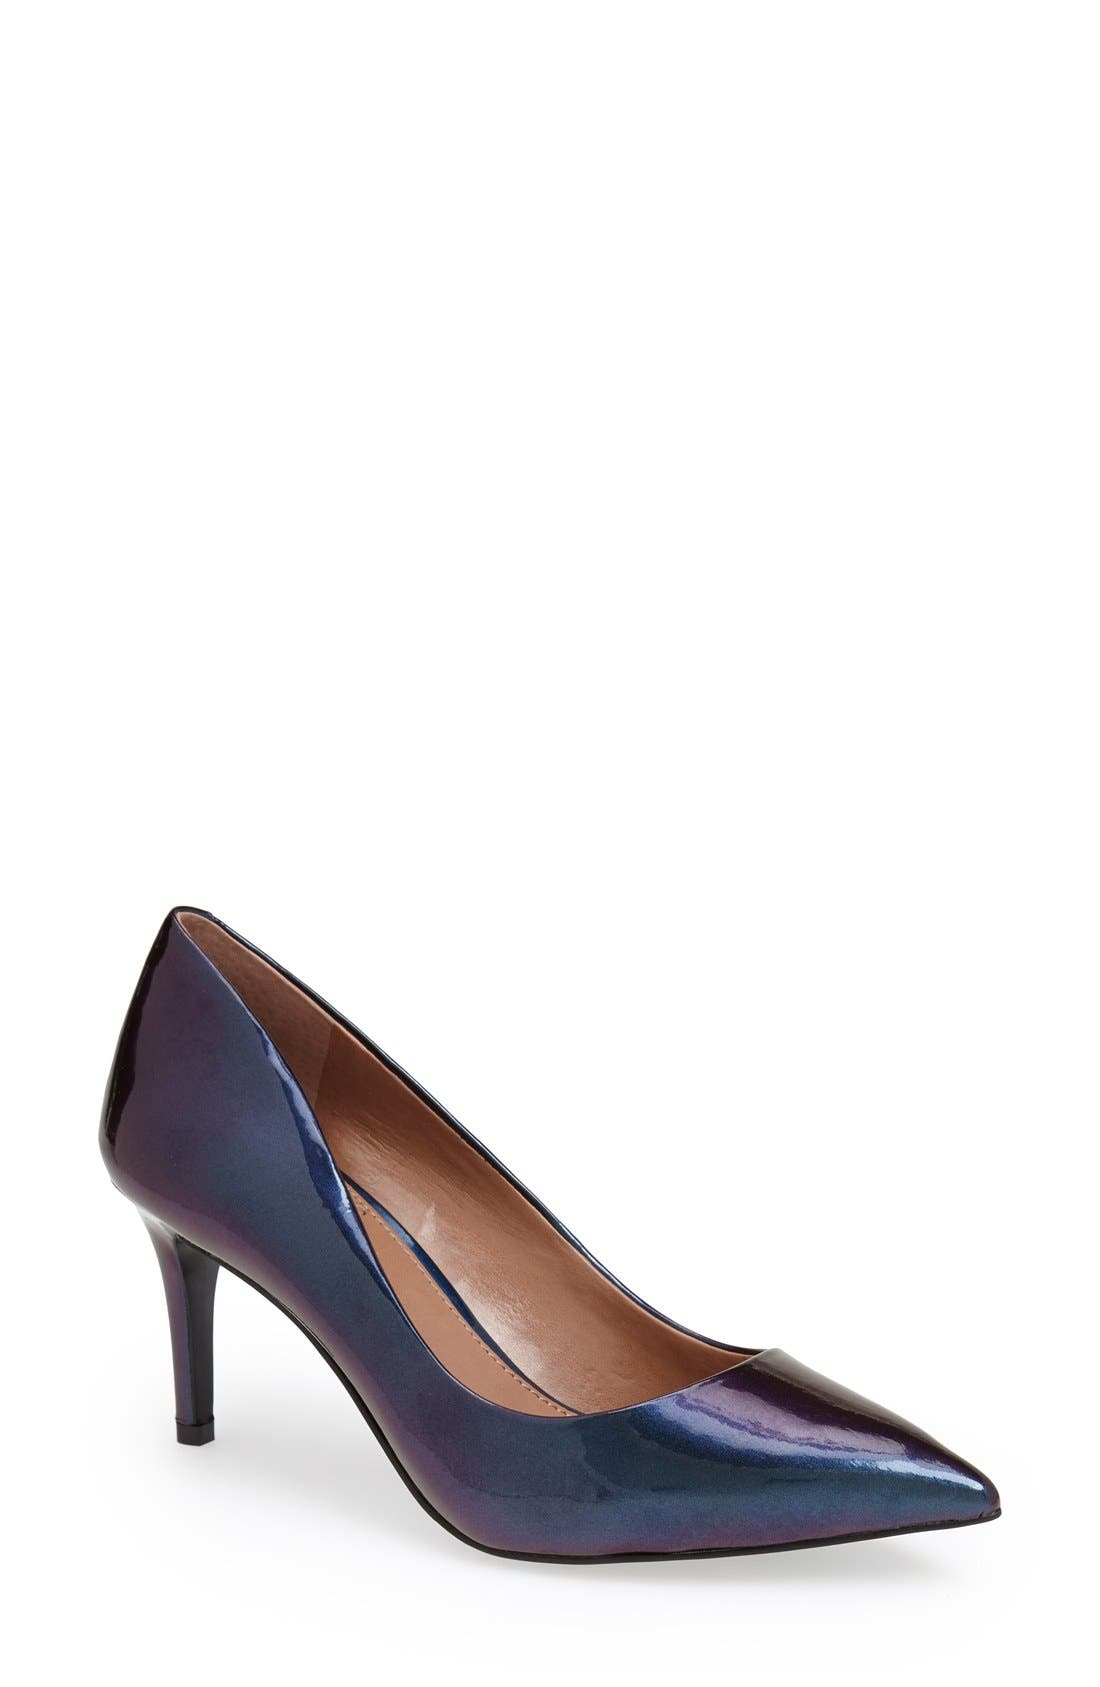 Alternate Image 1 Selected - Vince Camuto 'Cassina' Pointy Toe Pump (Women)